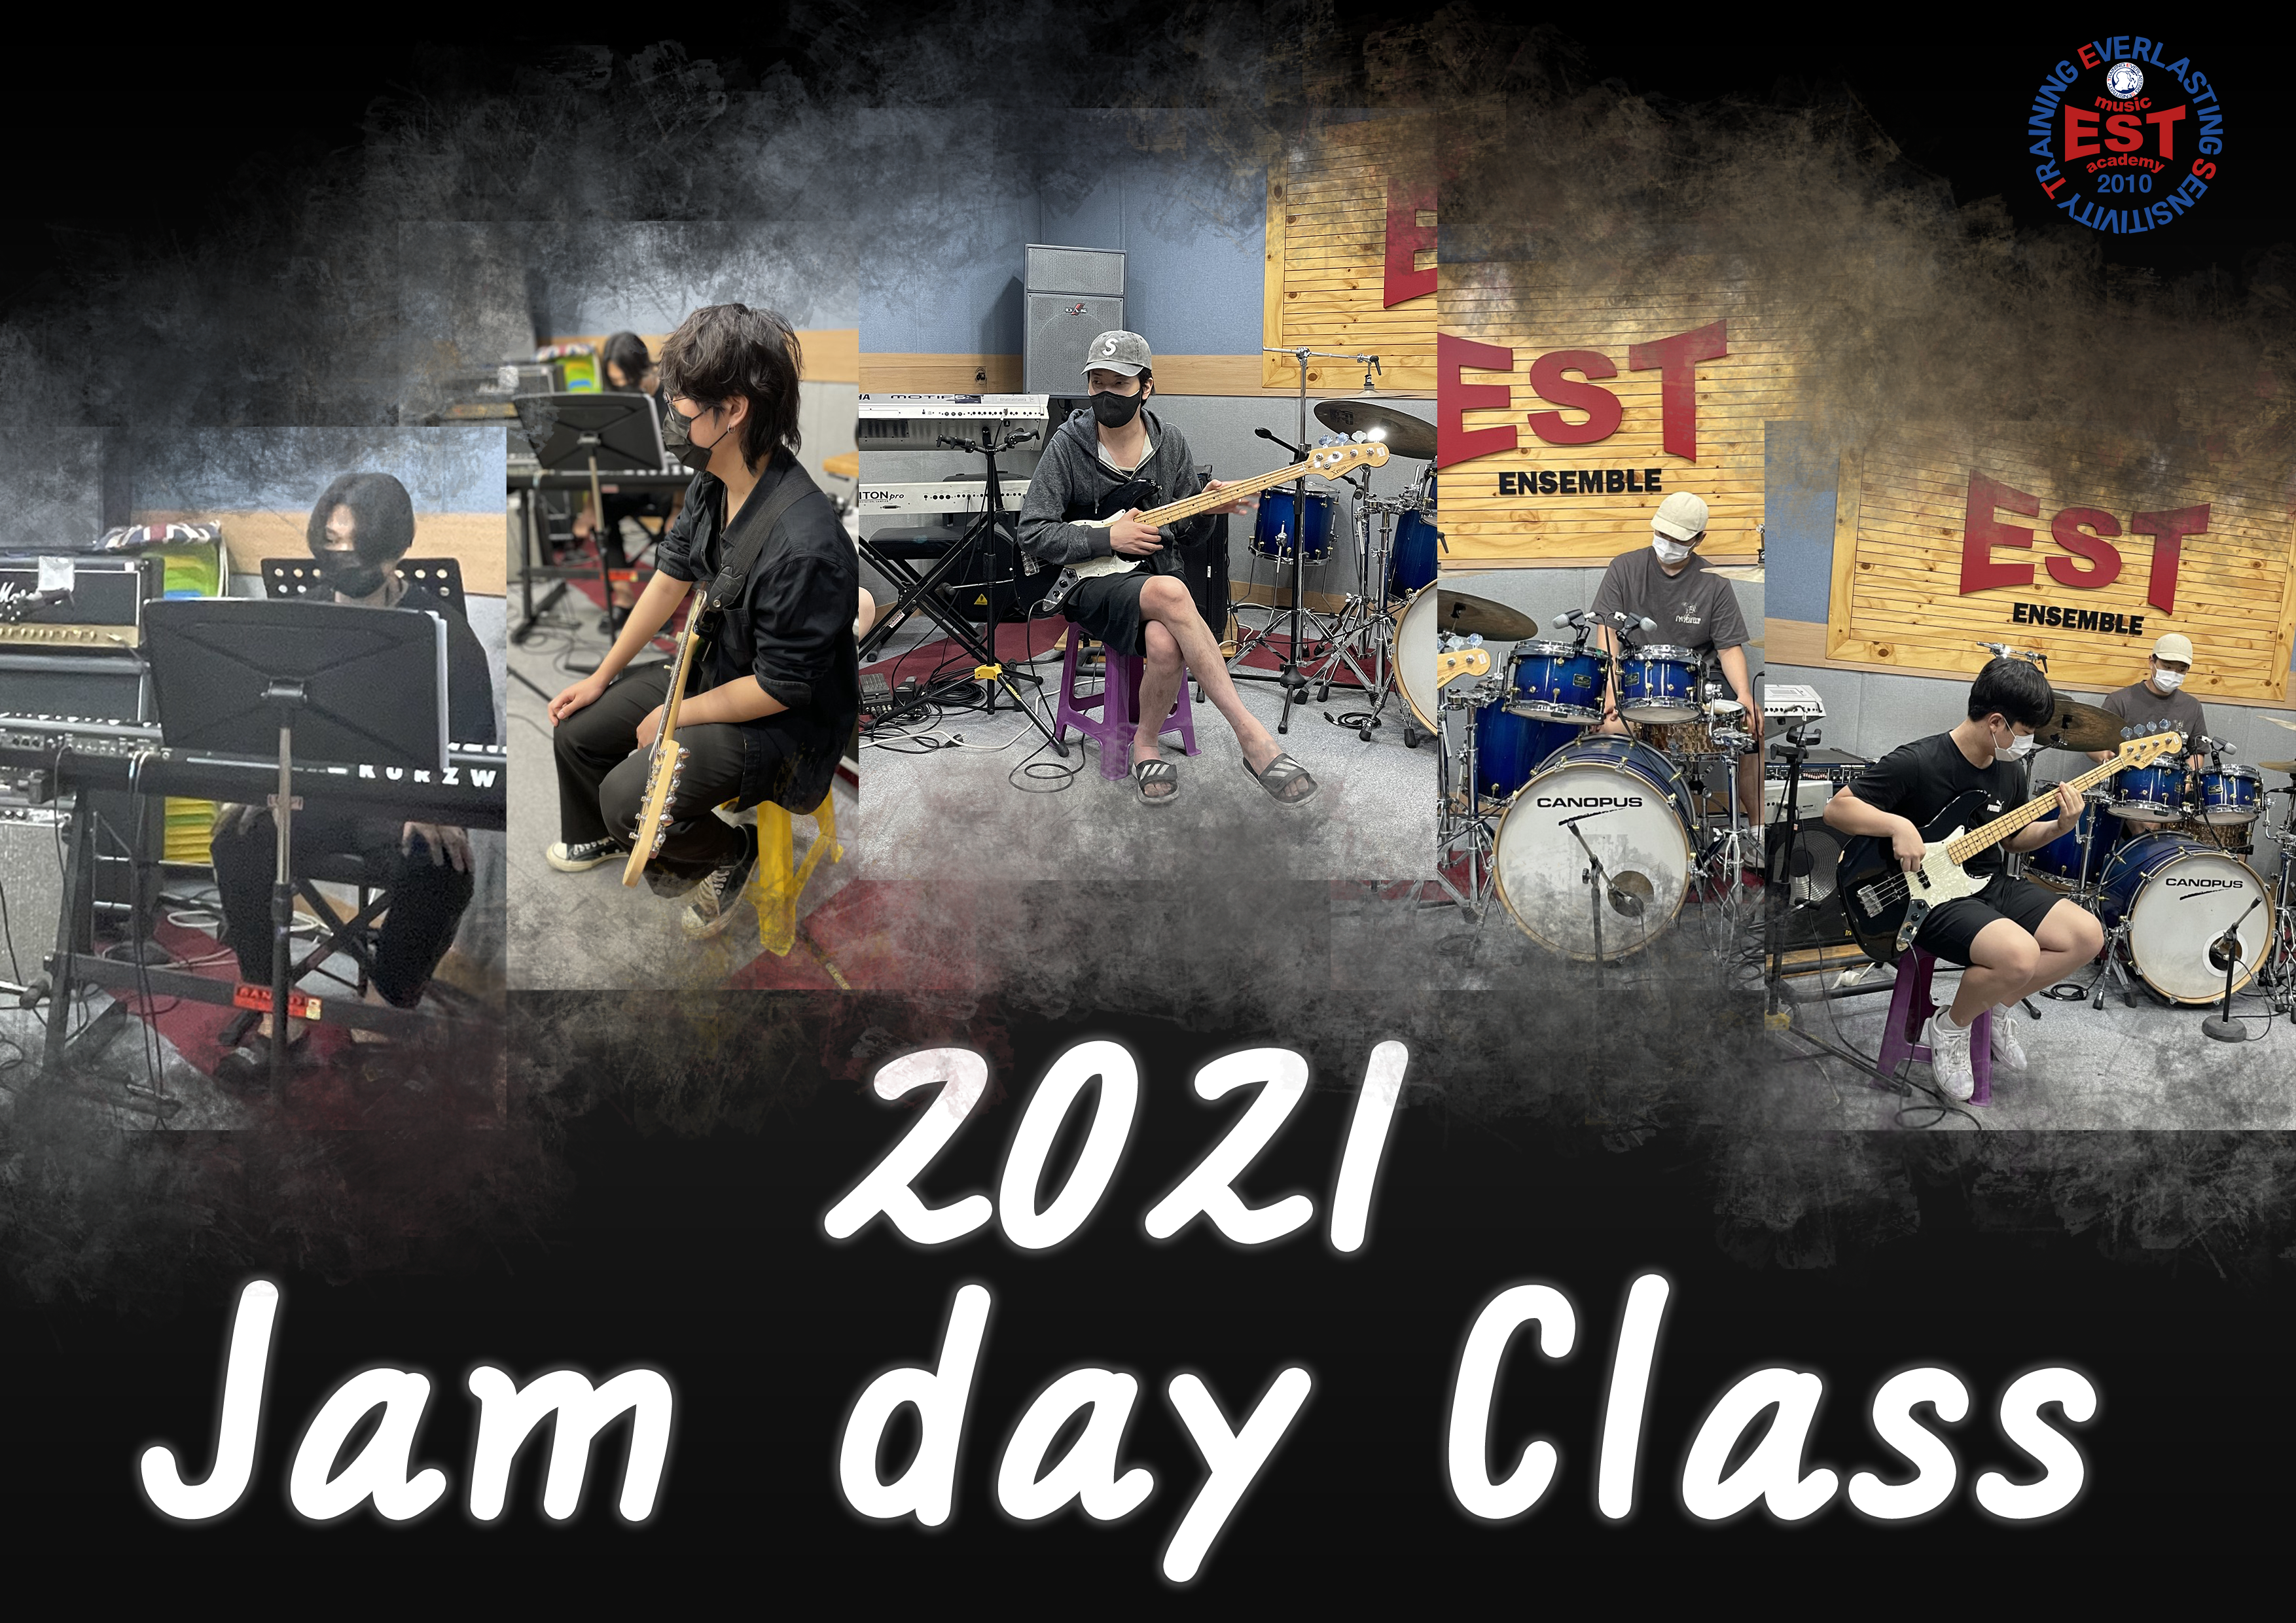 Jam-day-class-썸네일.png